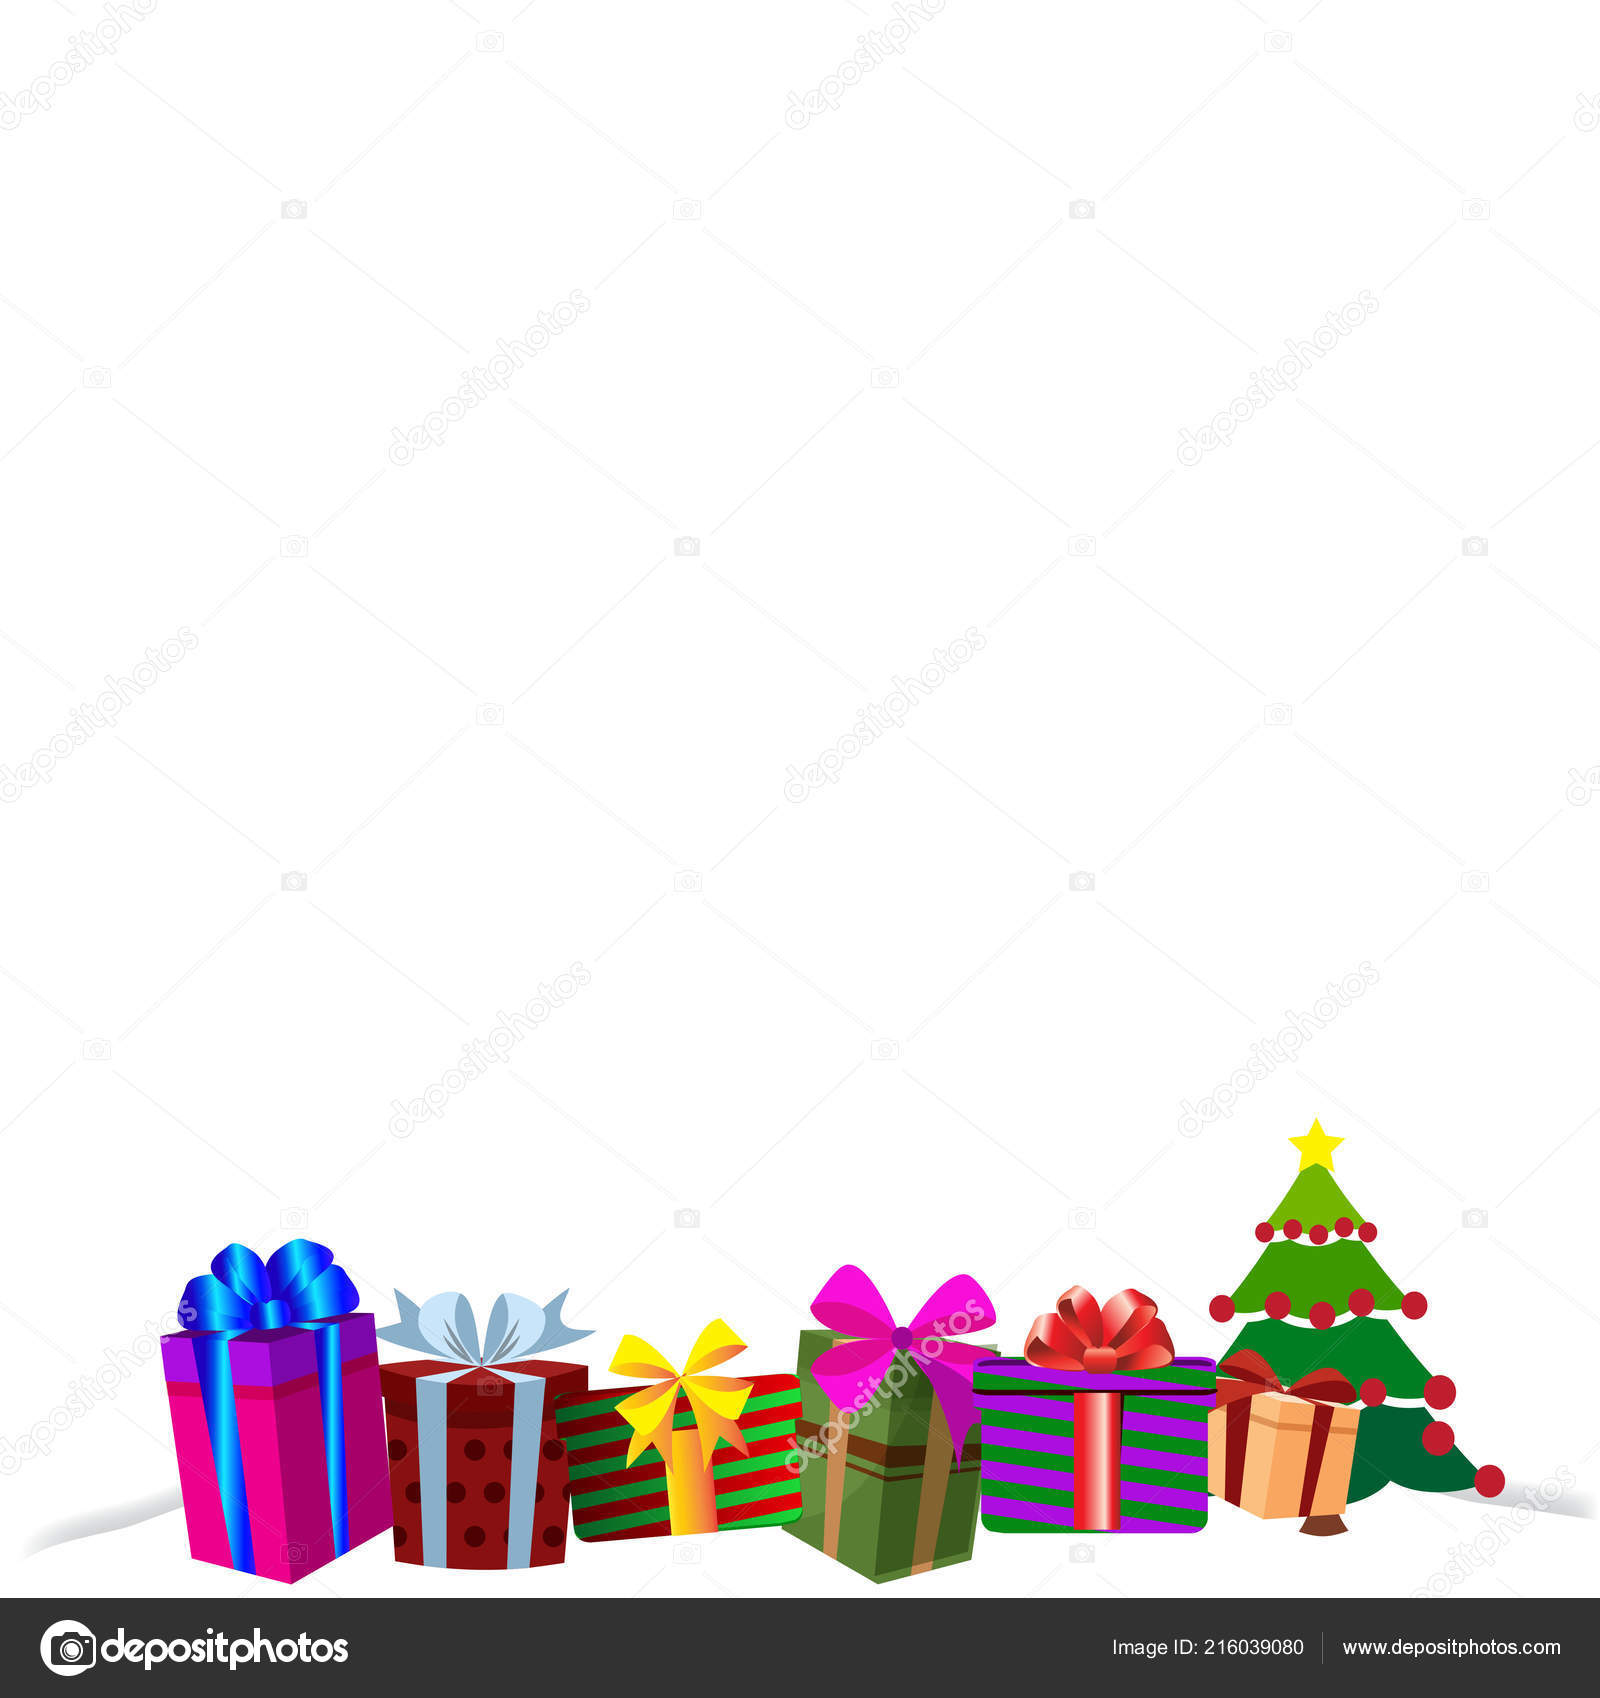 colourful gift boxes on white snow drift christmas or new year border frame background vector illustration of different size presents decorated by ribbons